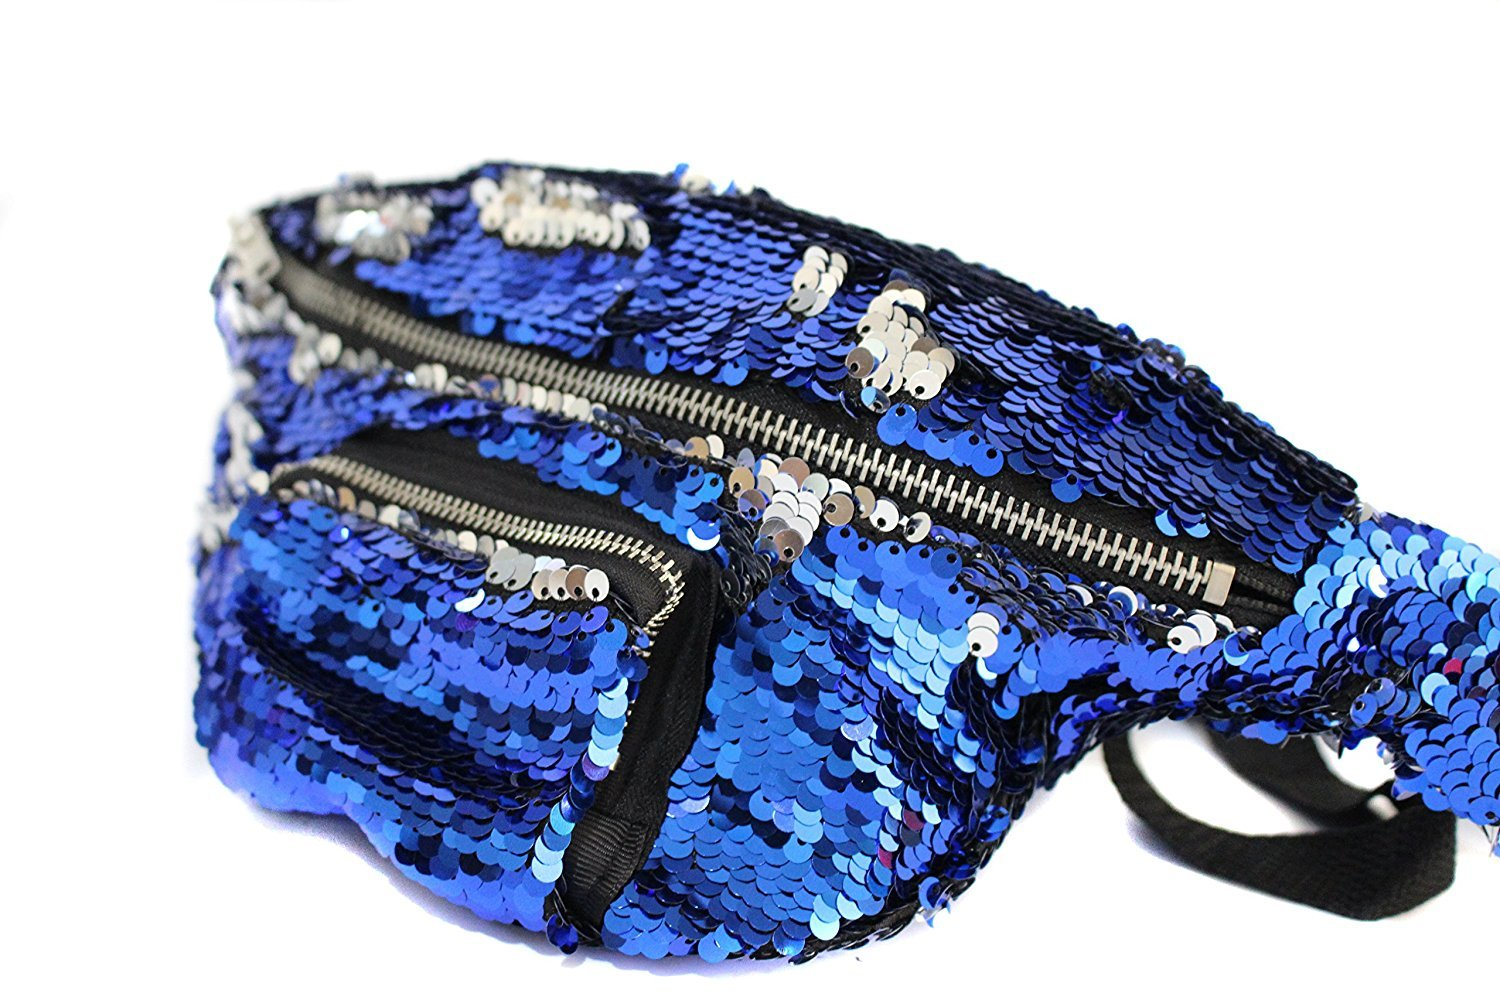 YAMATE Waist Pack, Unisex Mermaid Flake Fanny Purse Hip Bag for Outdoors Workout Traveling Casual Running Hiking Cycling (Dark Blue/Silver) by YAMATE